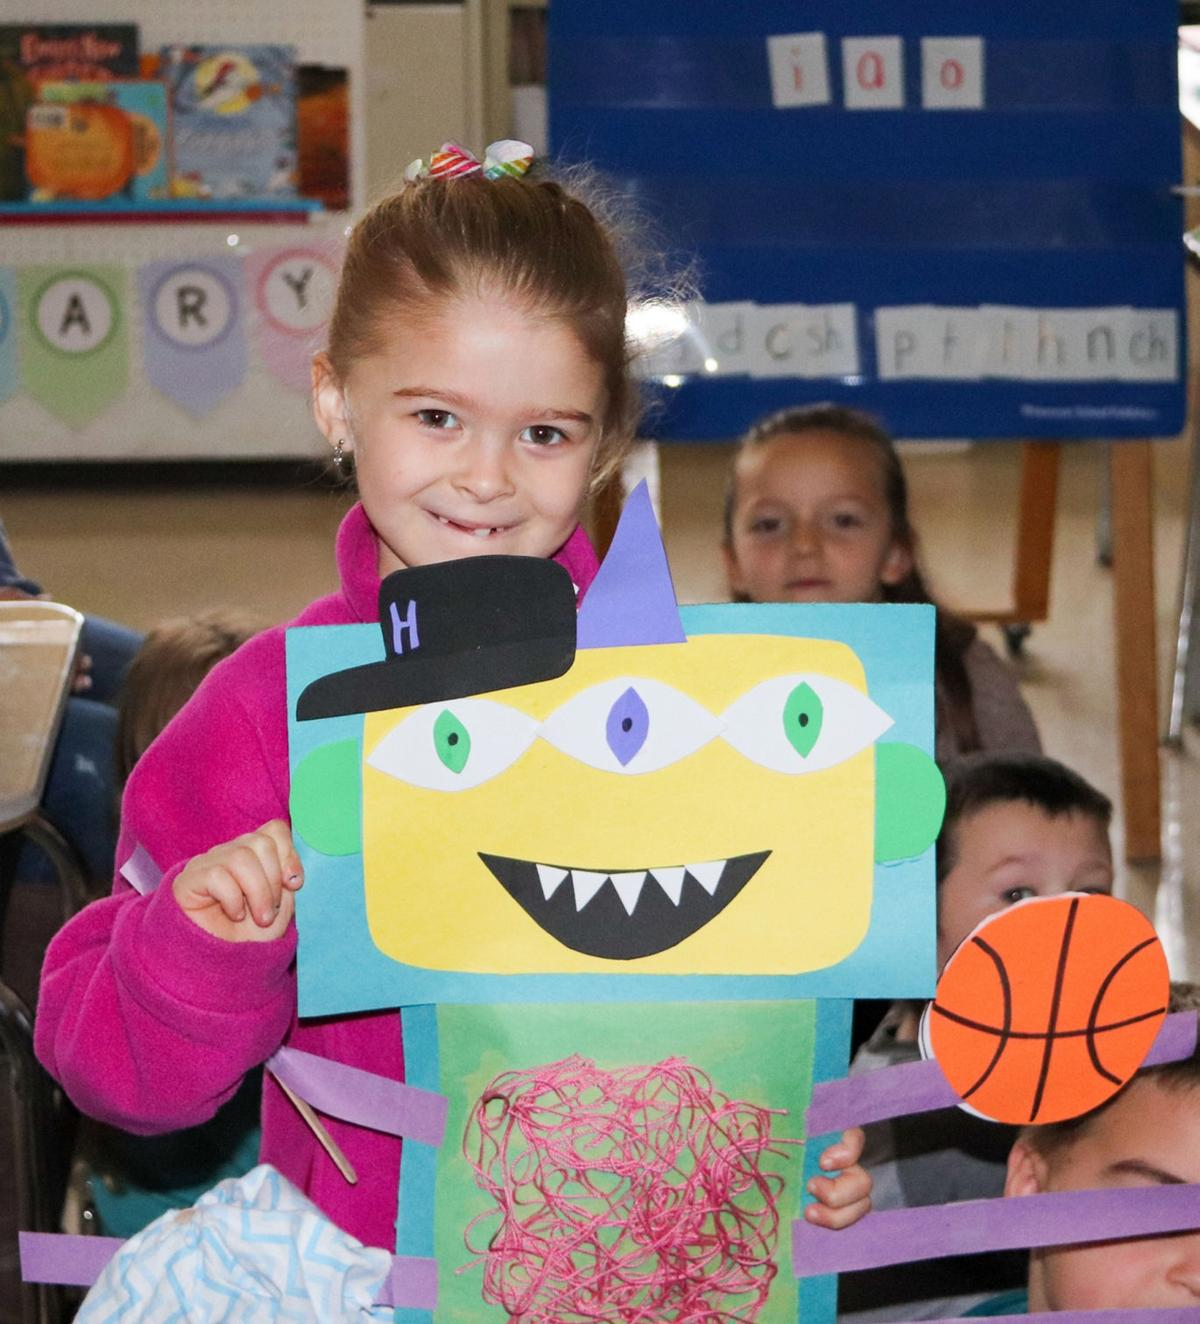 Videoconference provides Hannibal first-graders with lesson in communication